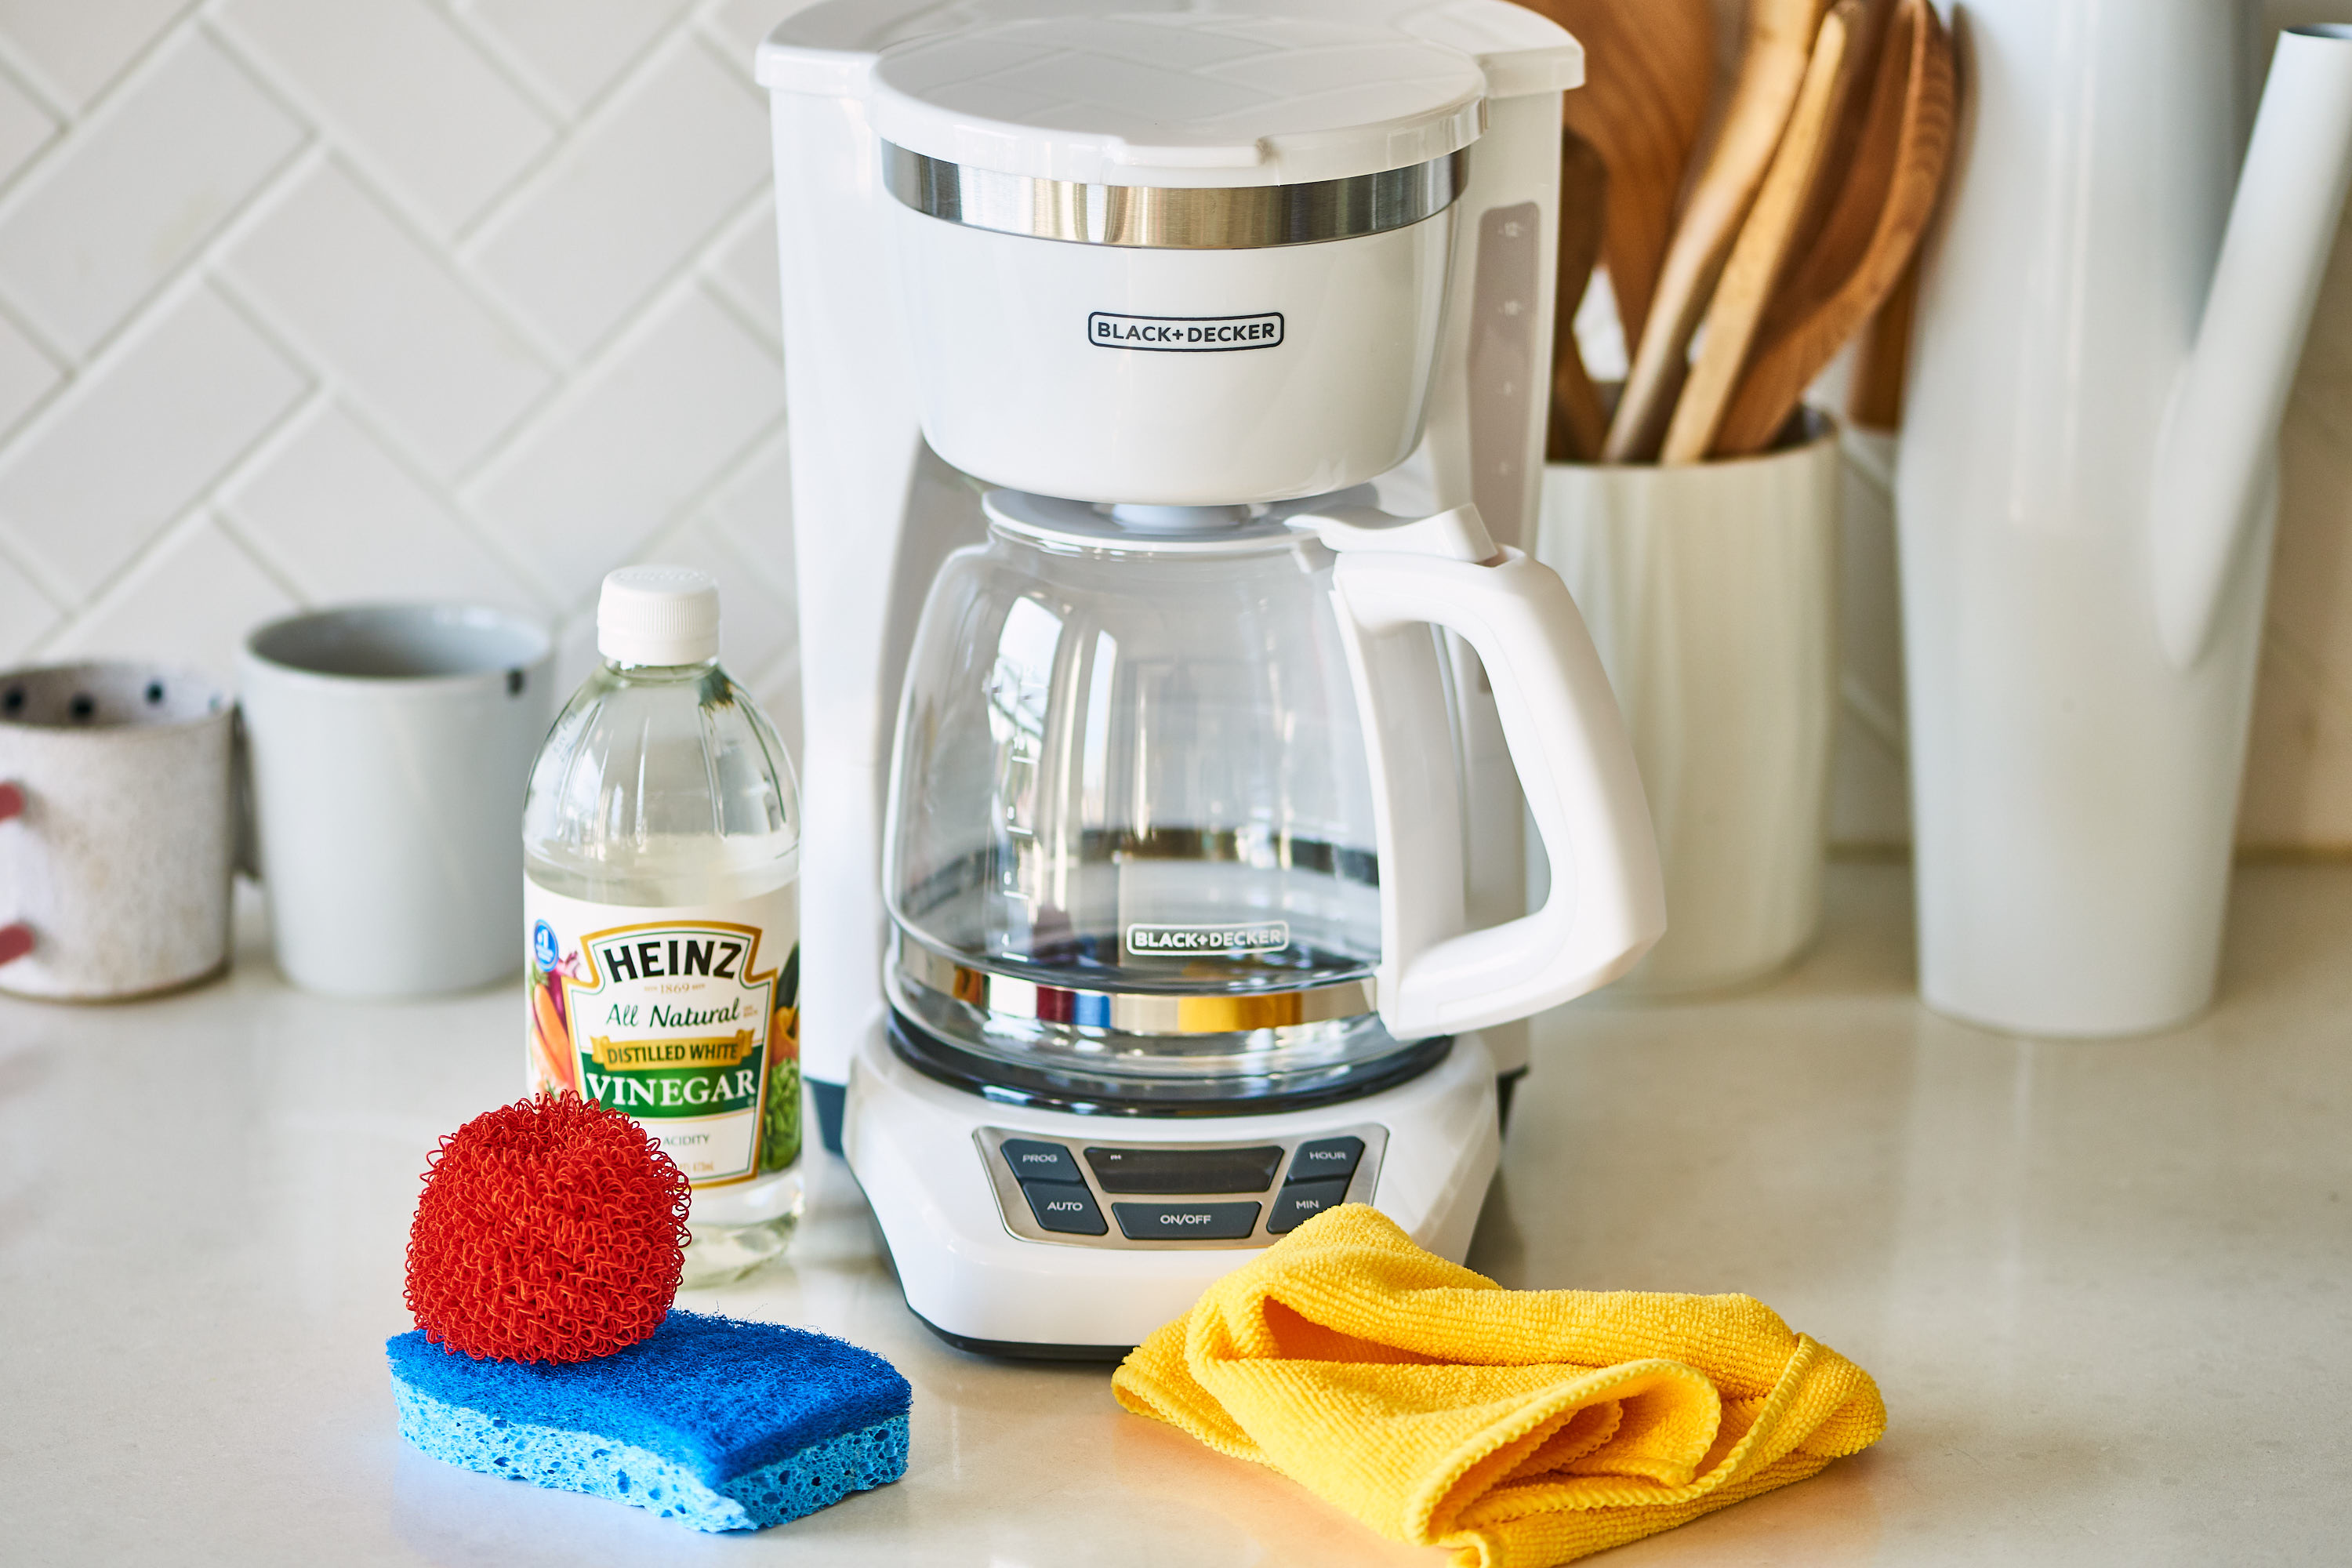 How To Clean a Coffee Maker | Kitchn